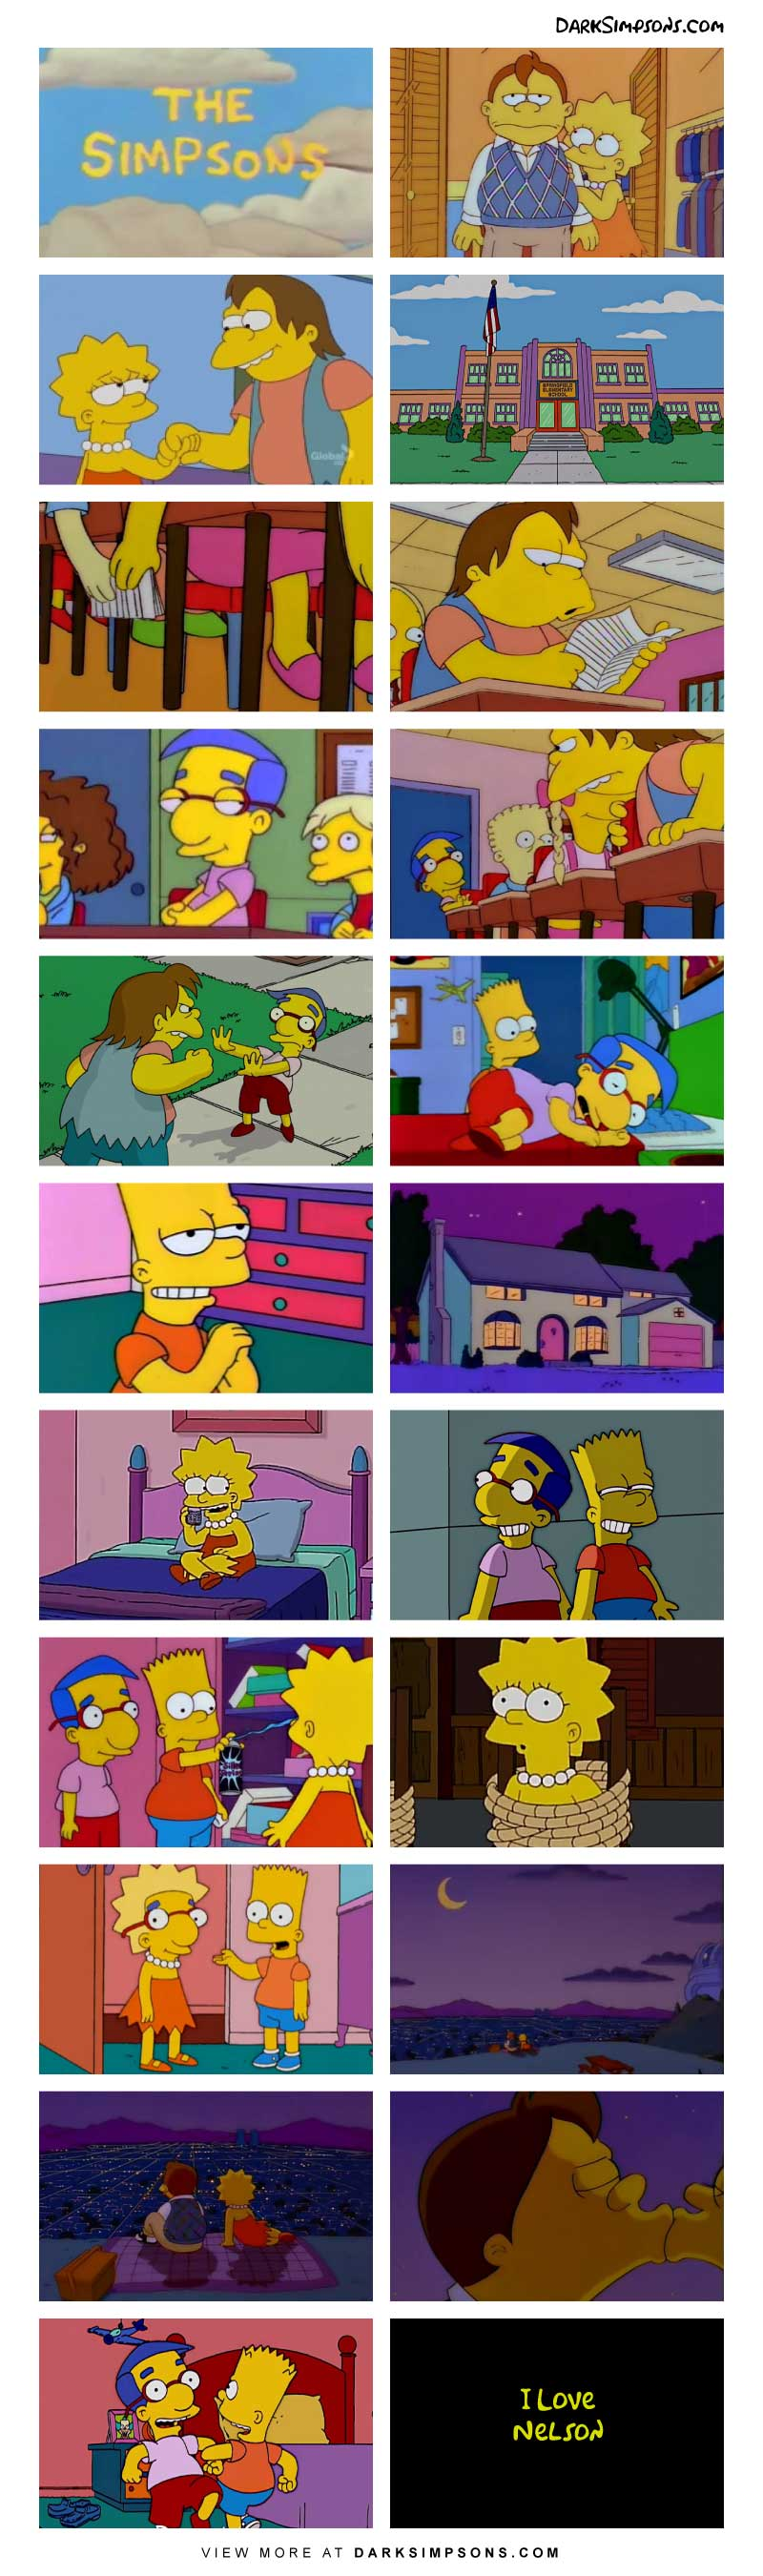 Love is in the air at Springfield Elementary and there is an unusual love triangle going on between Nelson, Lisa and Milhouse. That's not unusual you say? Well what if Milhouse is the one in love with Nelson?